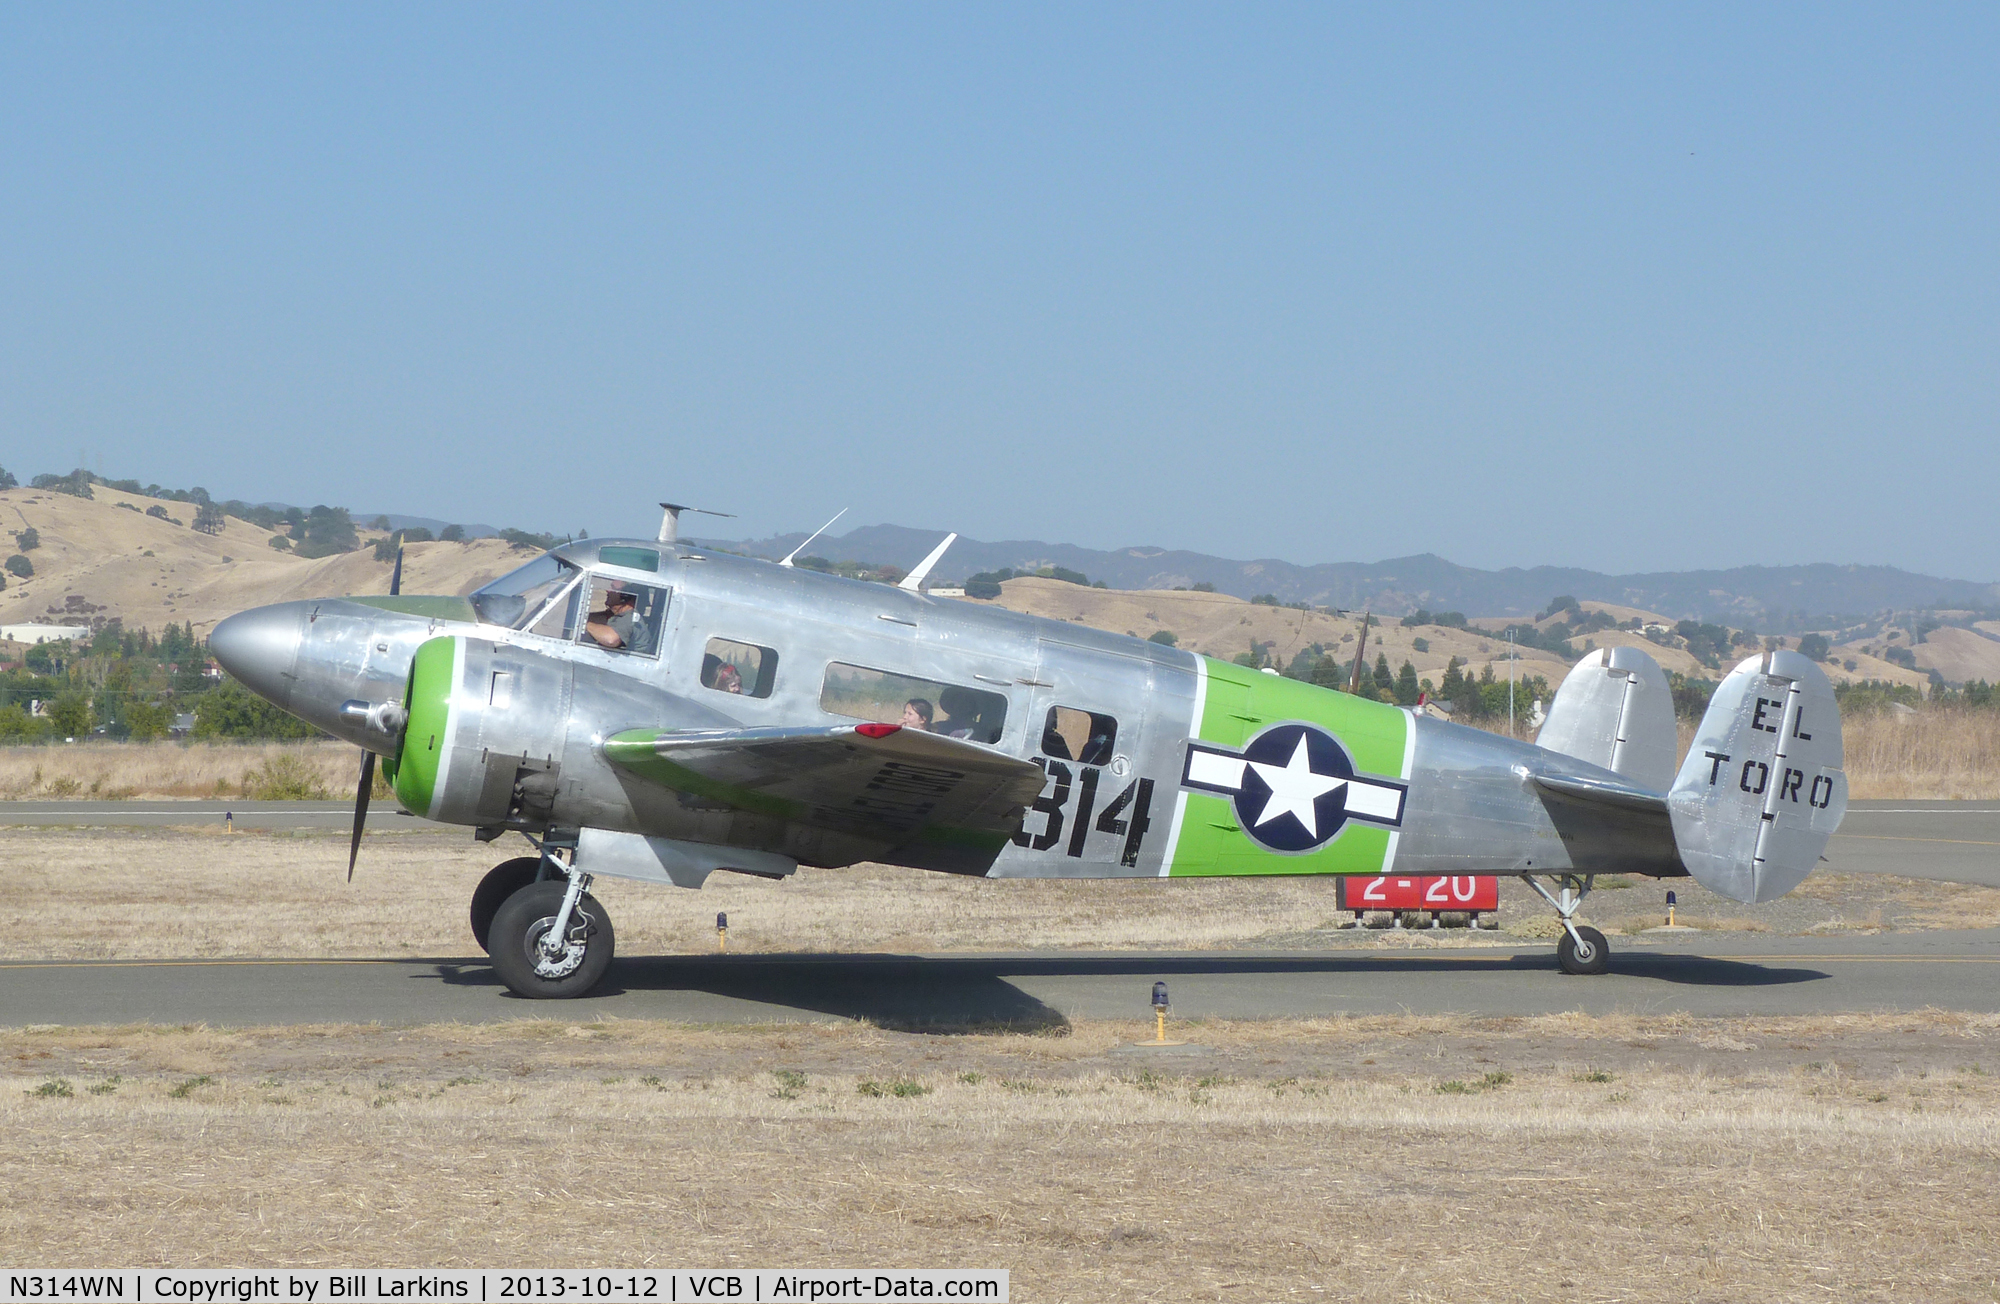 N314WN, 1952 Beech C-45H Expeditor C/N AF-566, At Mustang Day 2013